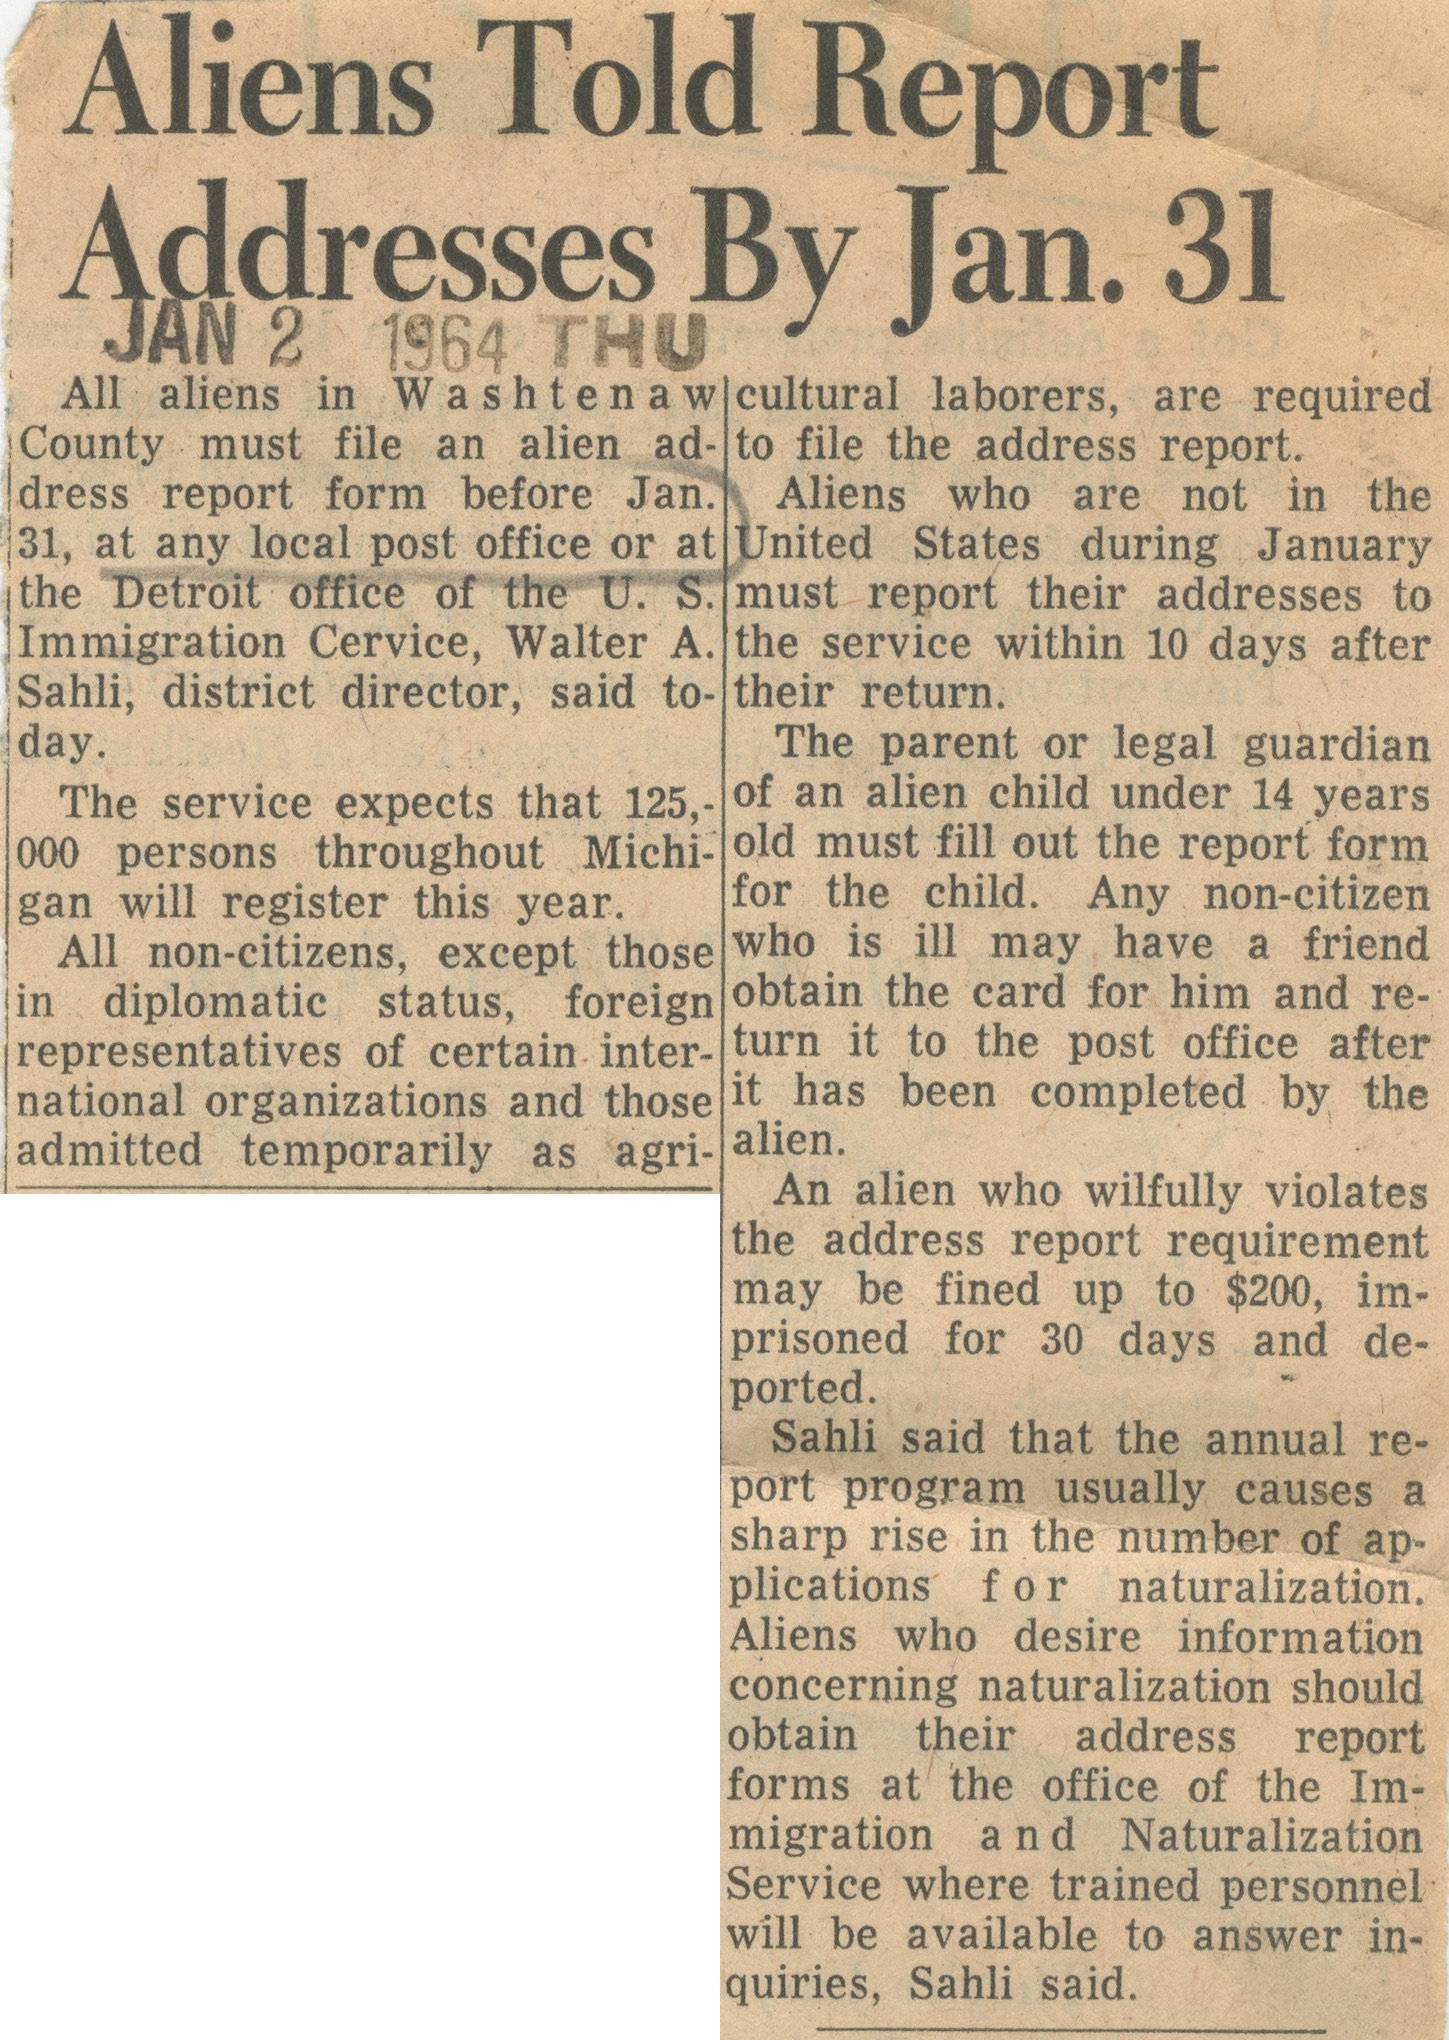 Aliens Told Report Addresses By Jan. 31 image